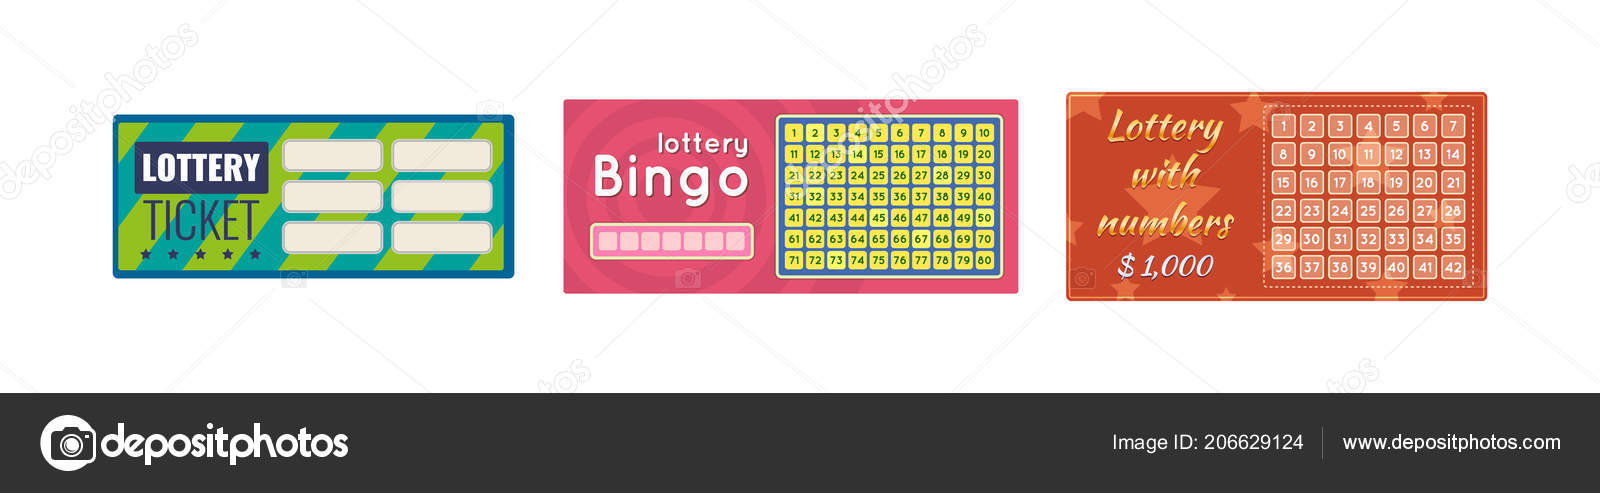 lottery tickets bingo lotto raffle of money and prizes tickets for event are monetary financial success economic growth lottery luck wellbeing